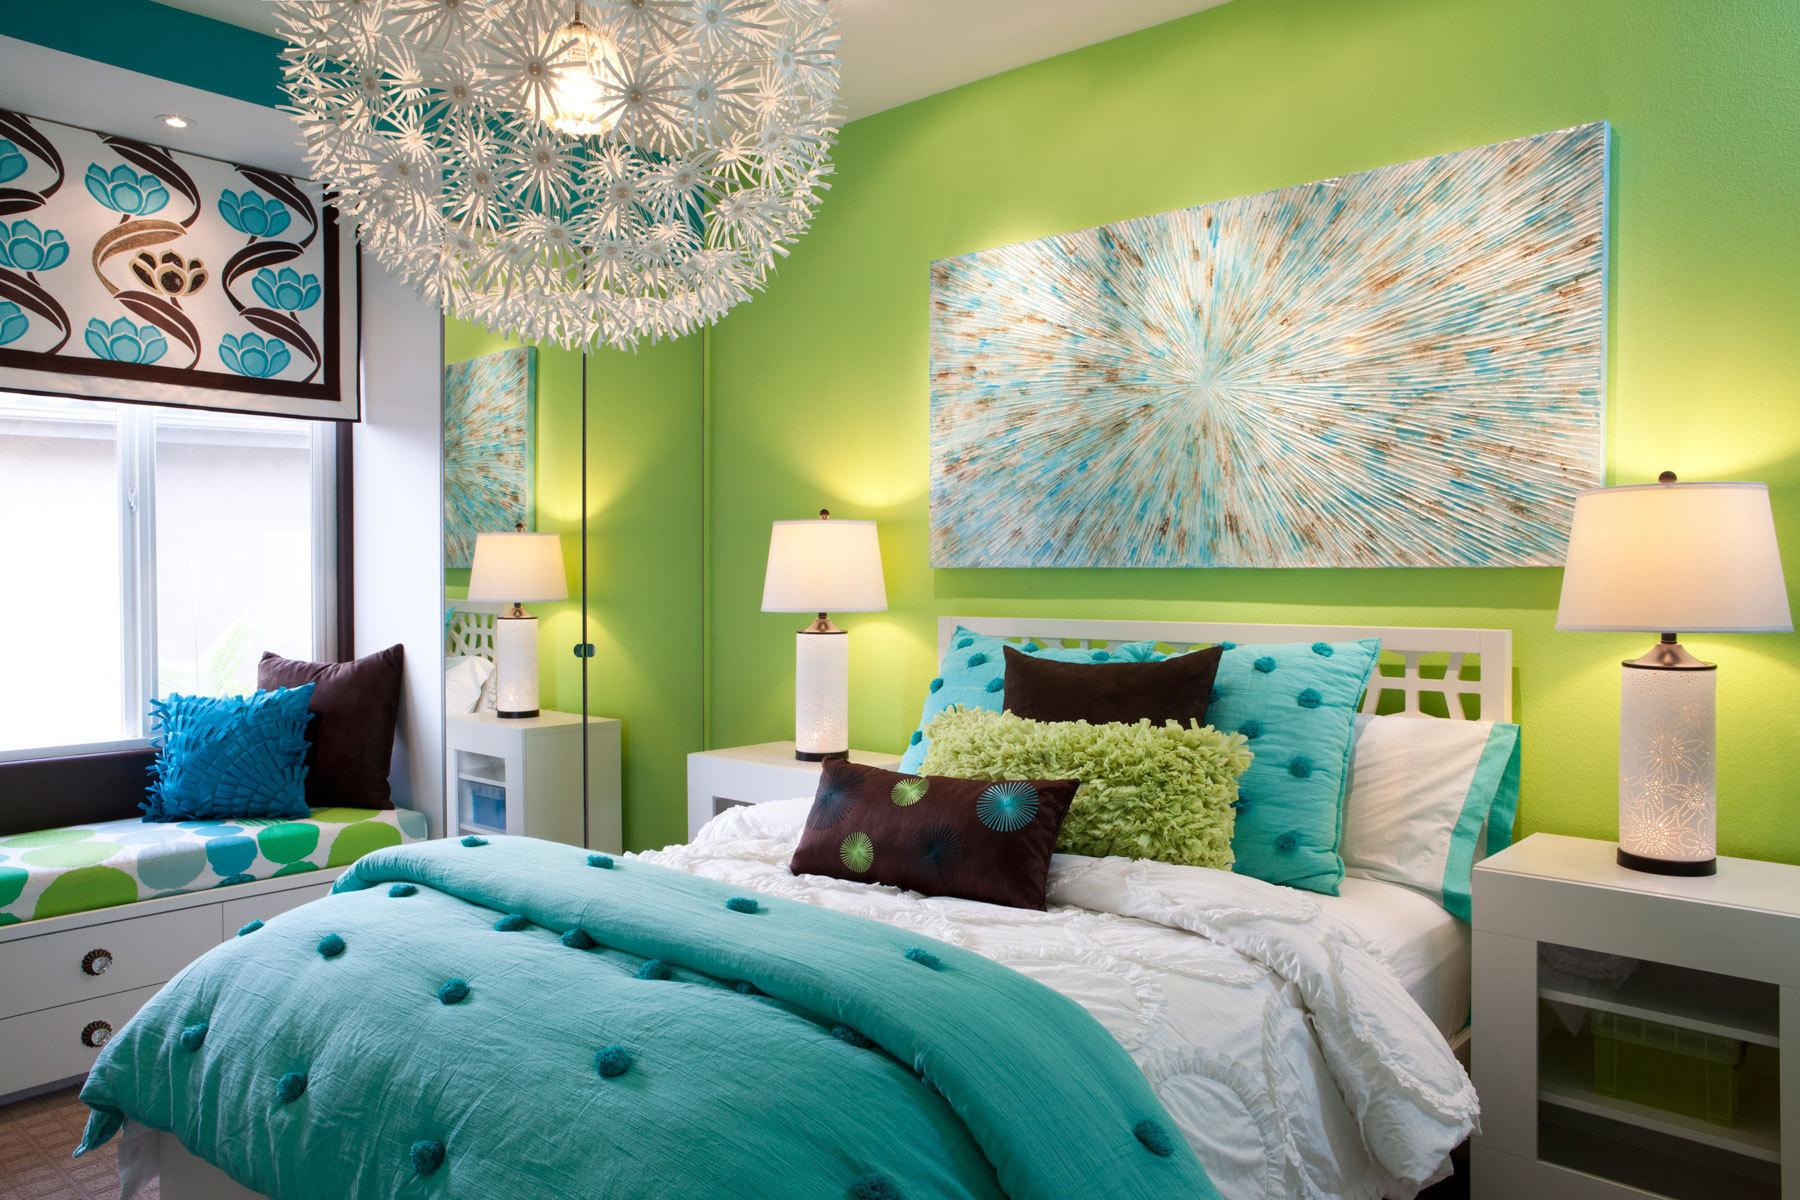 Bedroom soft design picture green